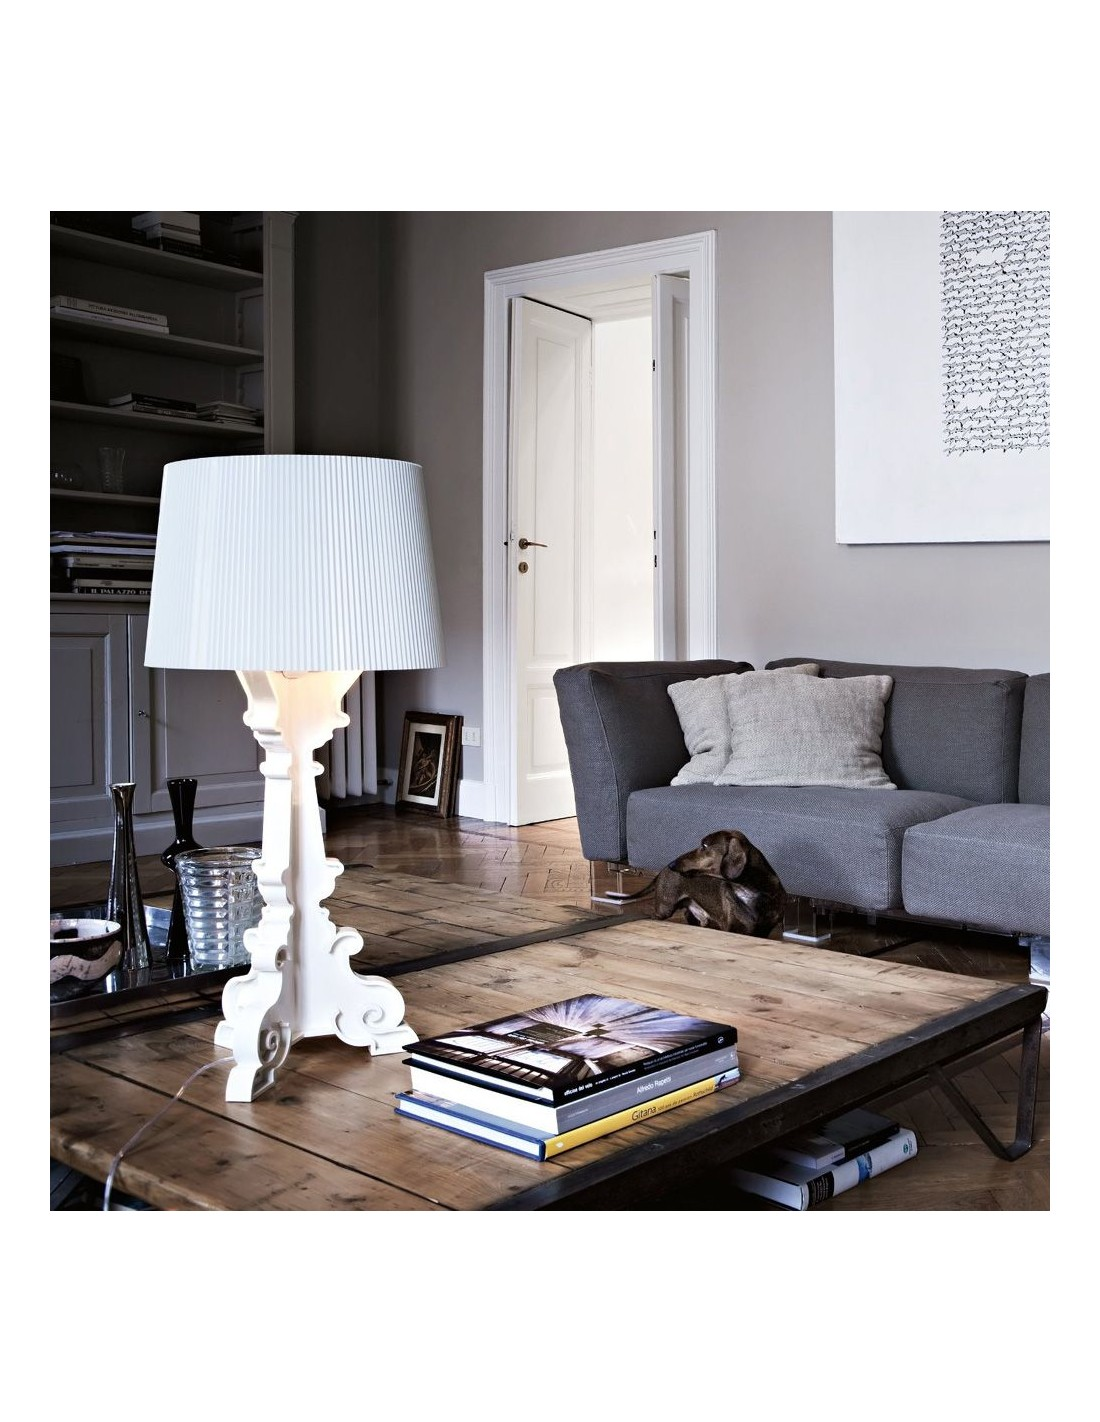 lampe de table bourgie cristal blanc mise en sc ne pour la marque kartell. Black Bedroom Furniture Sets. Home Design Ideas